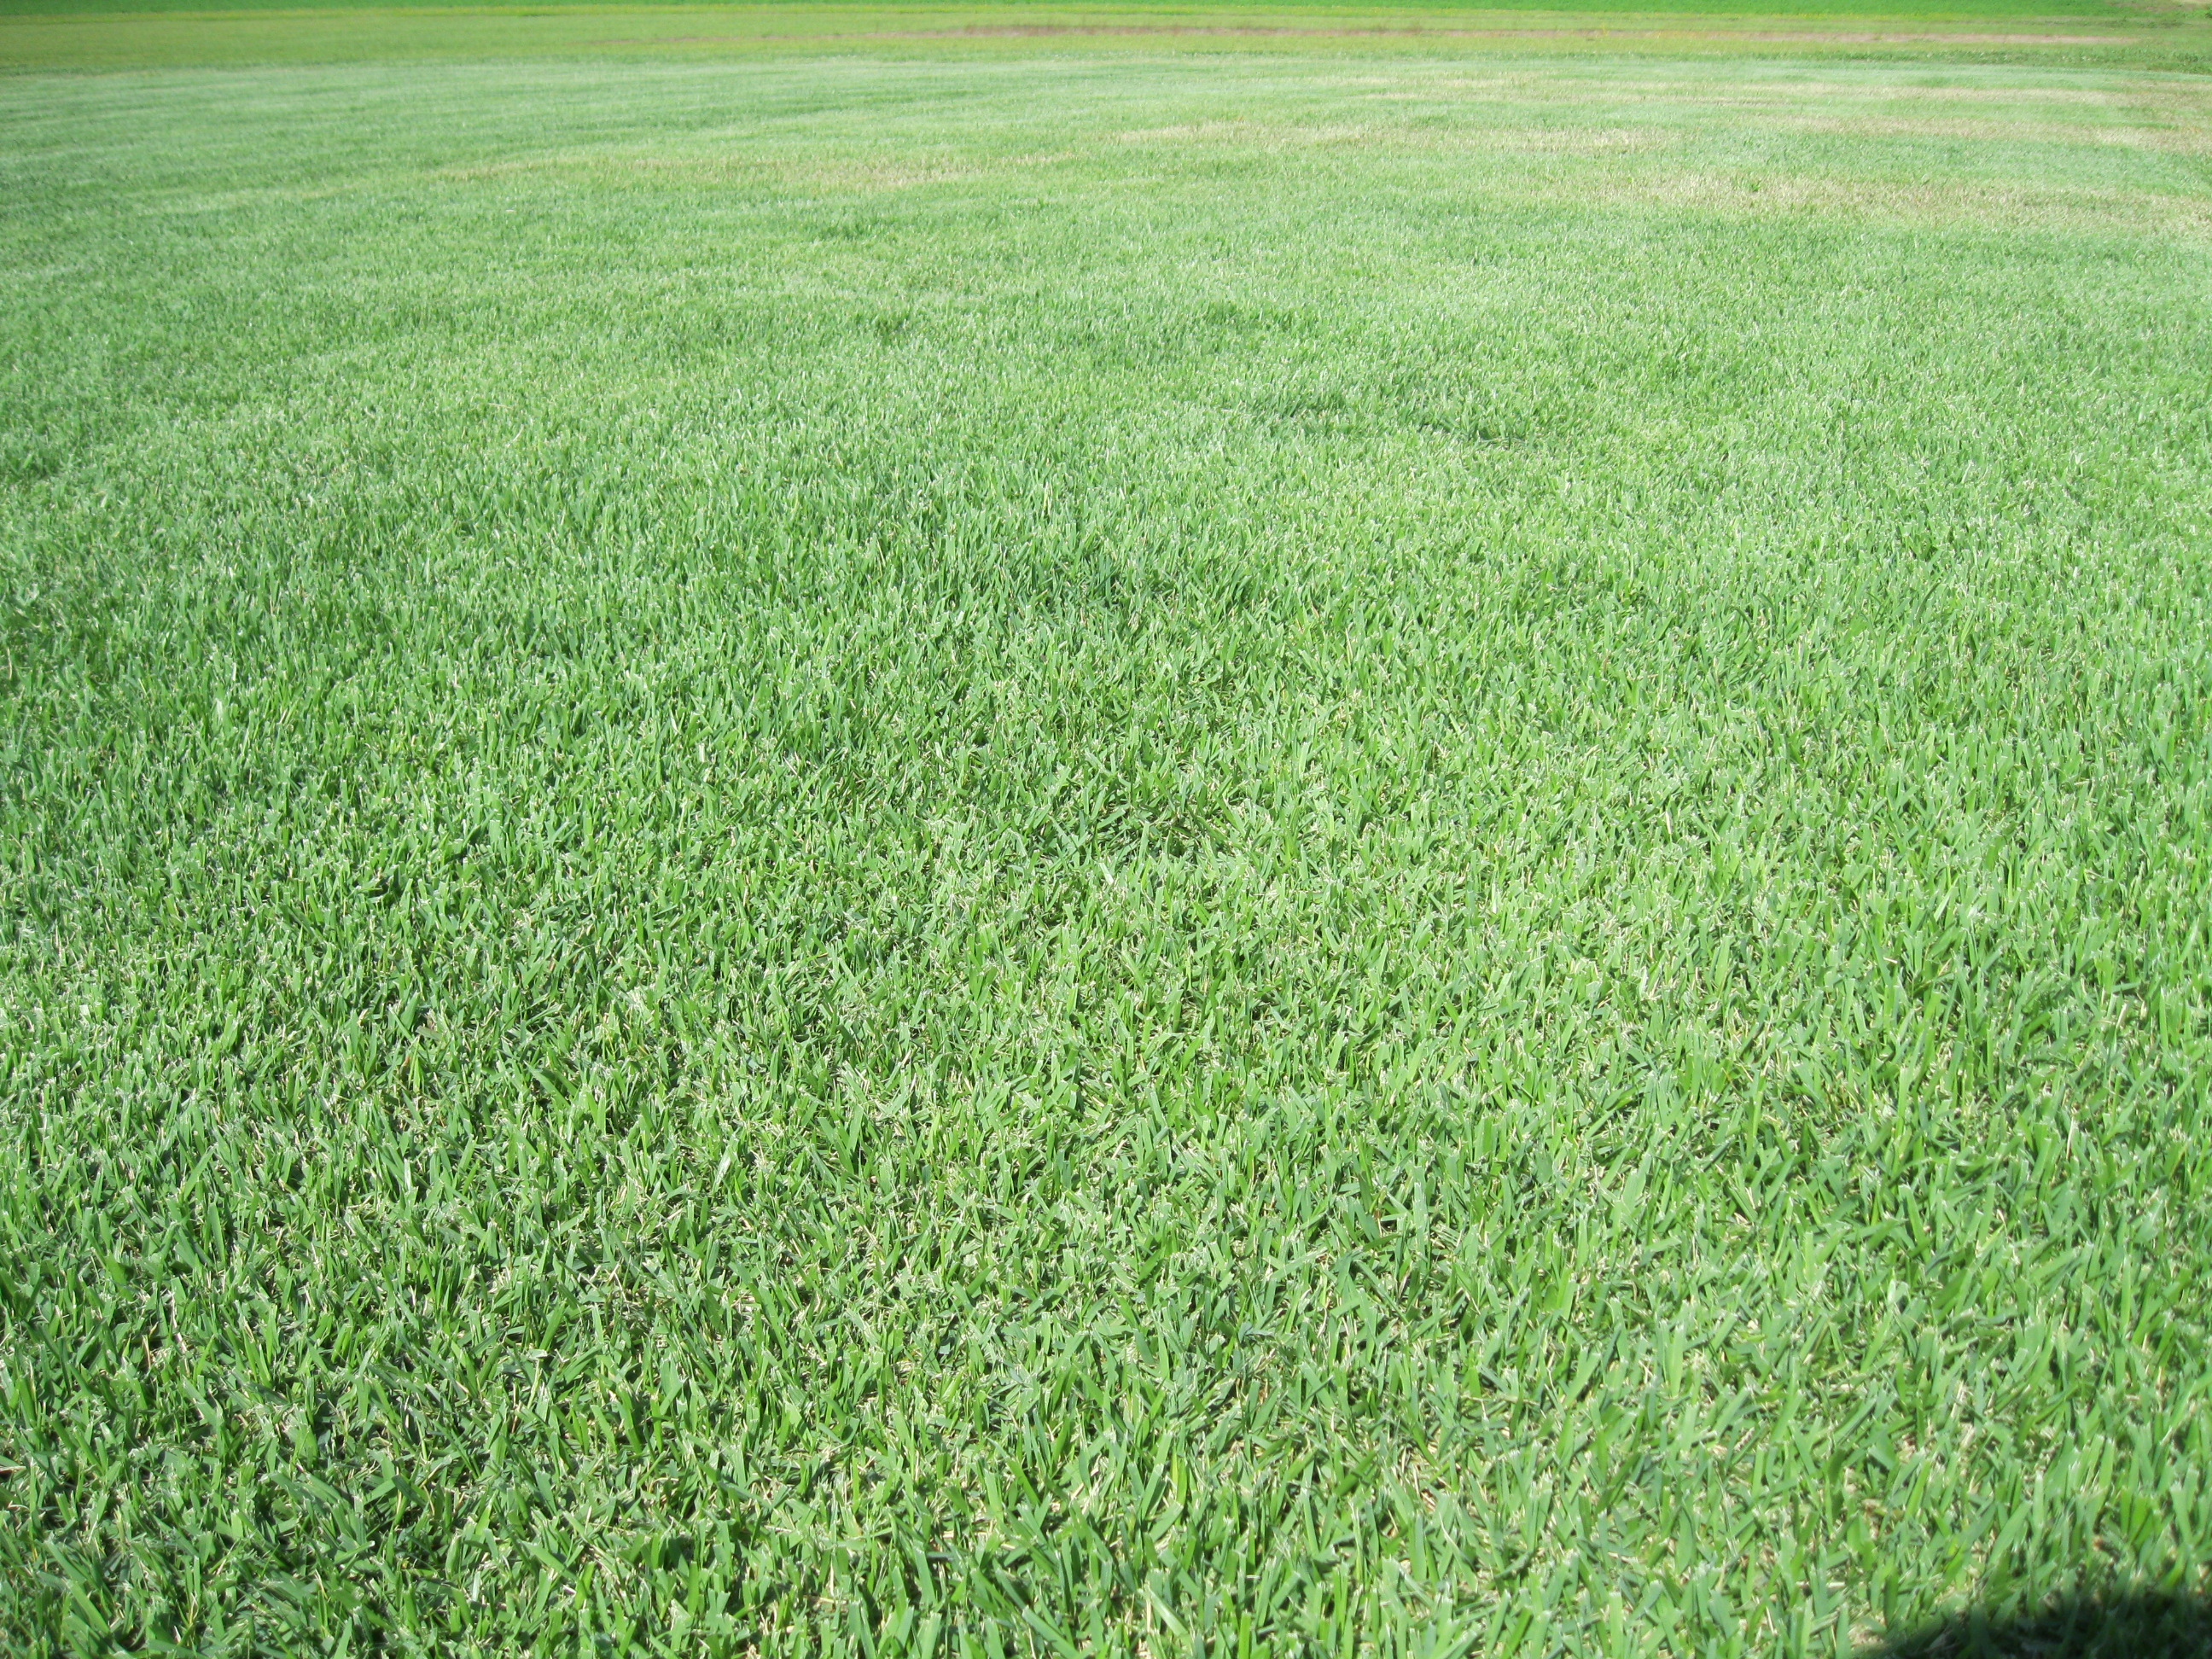 Rebounding a Lawn in Decline May Start with a Simple Fix